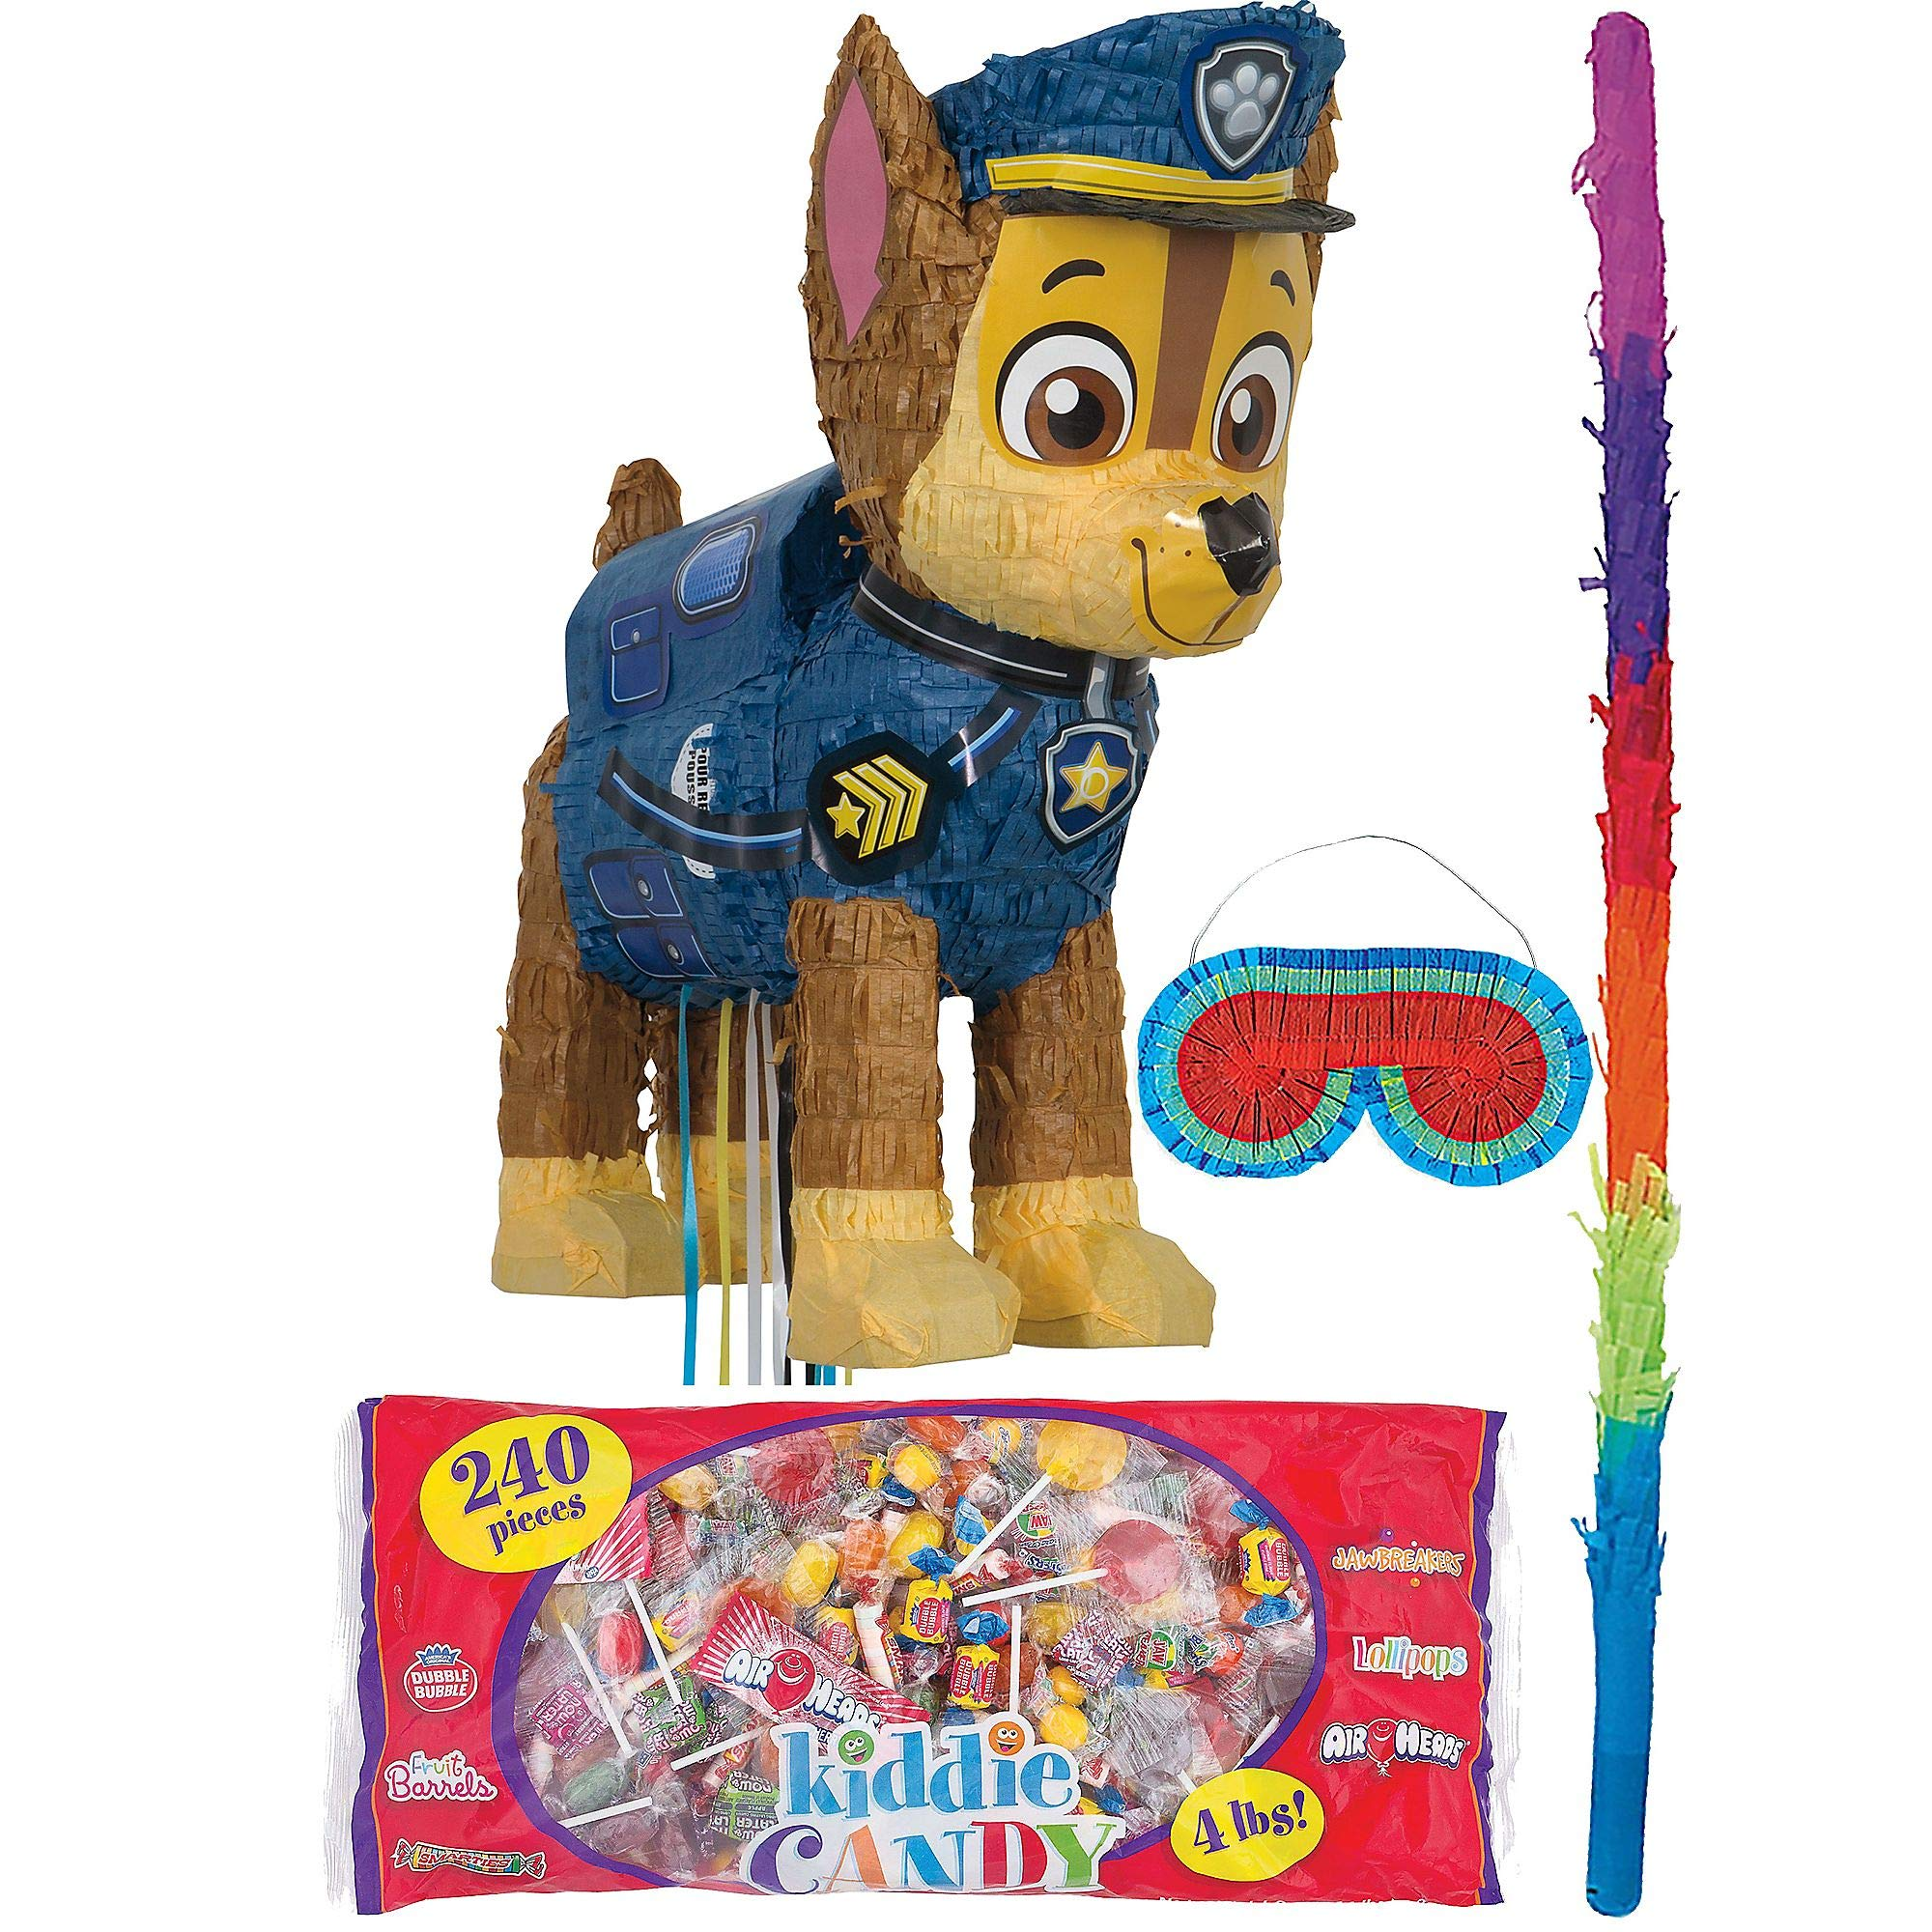 Party City Chase PAW Patrol Pinata Kit for Birthday Party, Includes Bat, Blindfold and Kiddie Candy Mix (4lb bag)